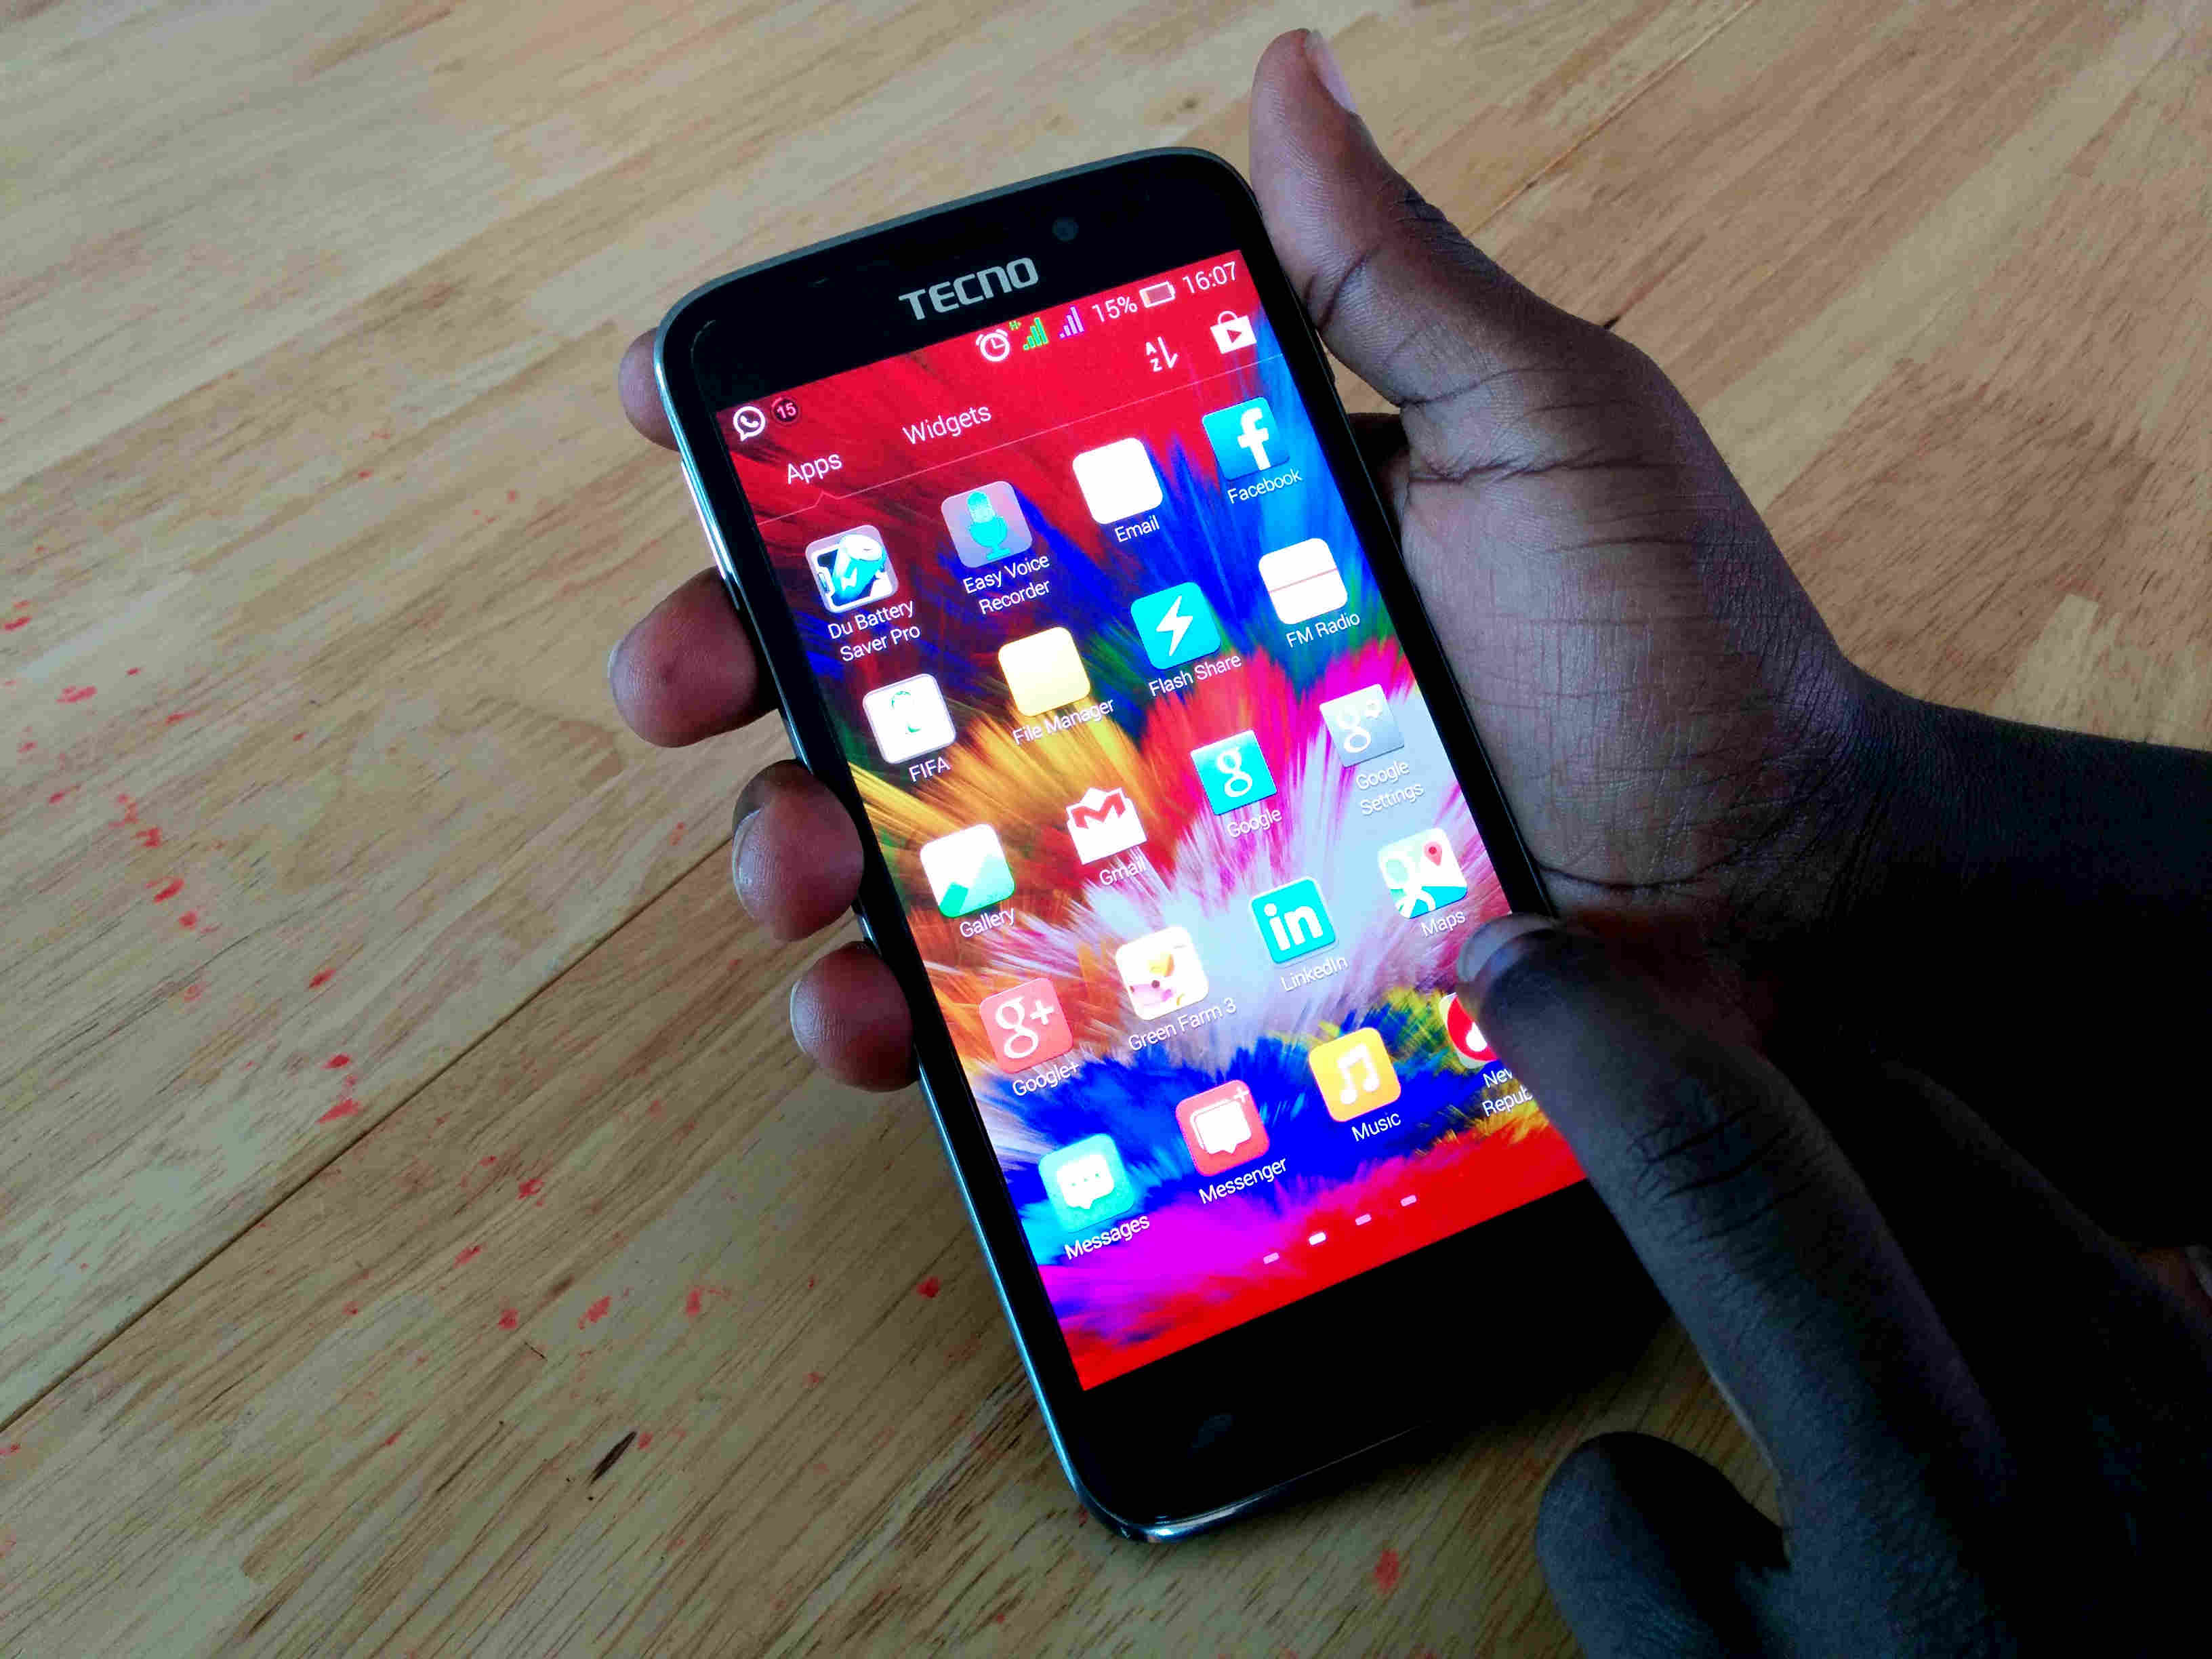 Top 5 Tecno smartphones in Q1 2015 - Dignited